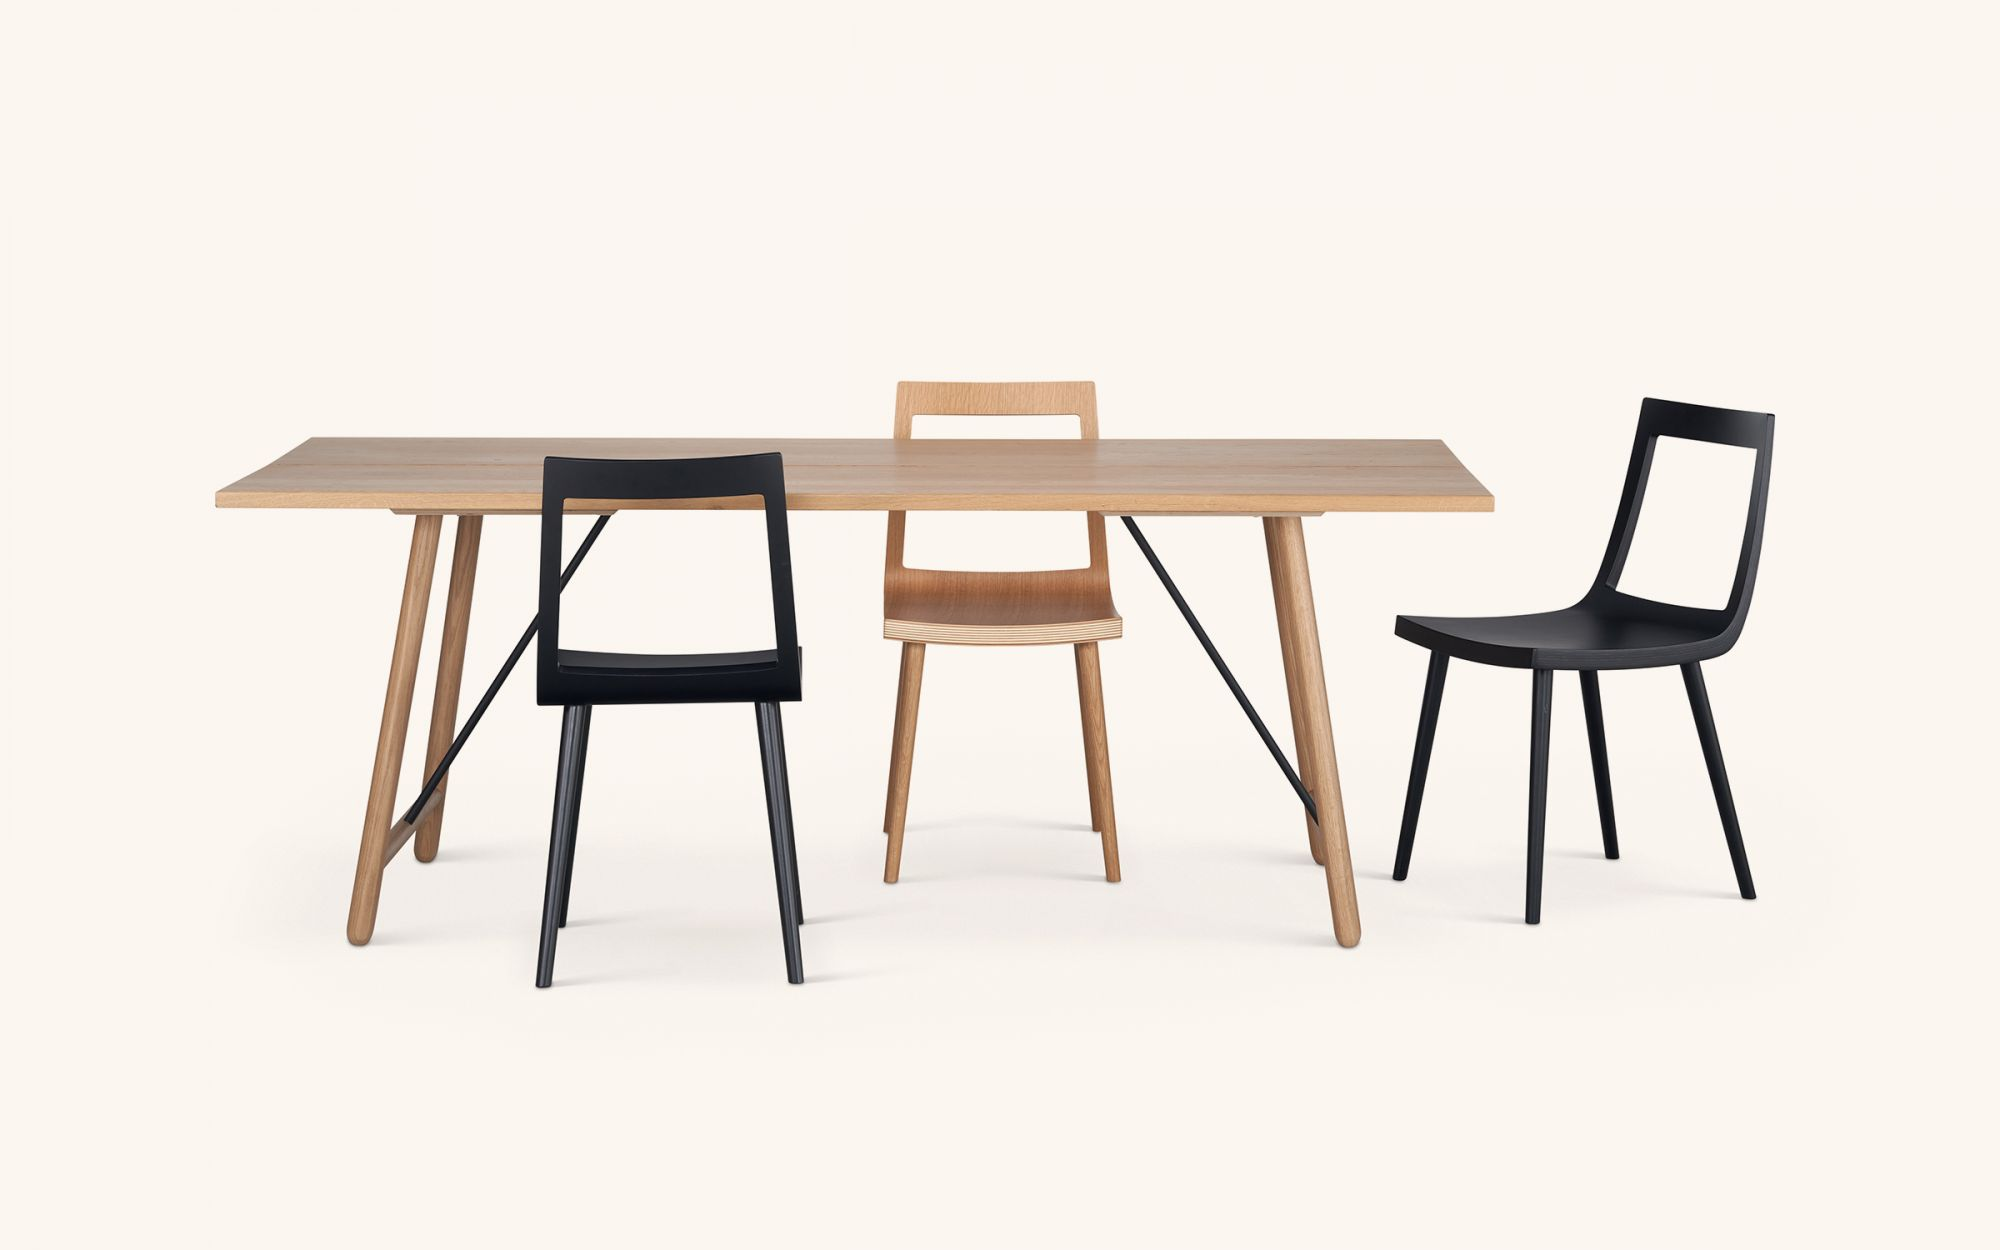 FrontWood-table200-mood-TapioAnttilaCollection